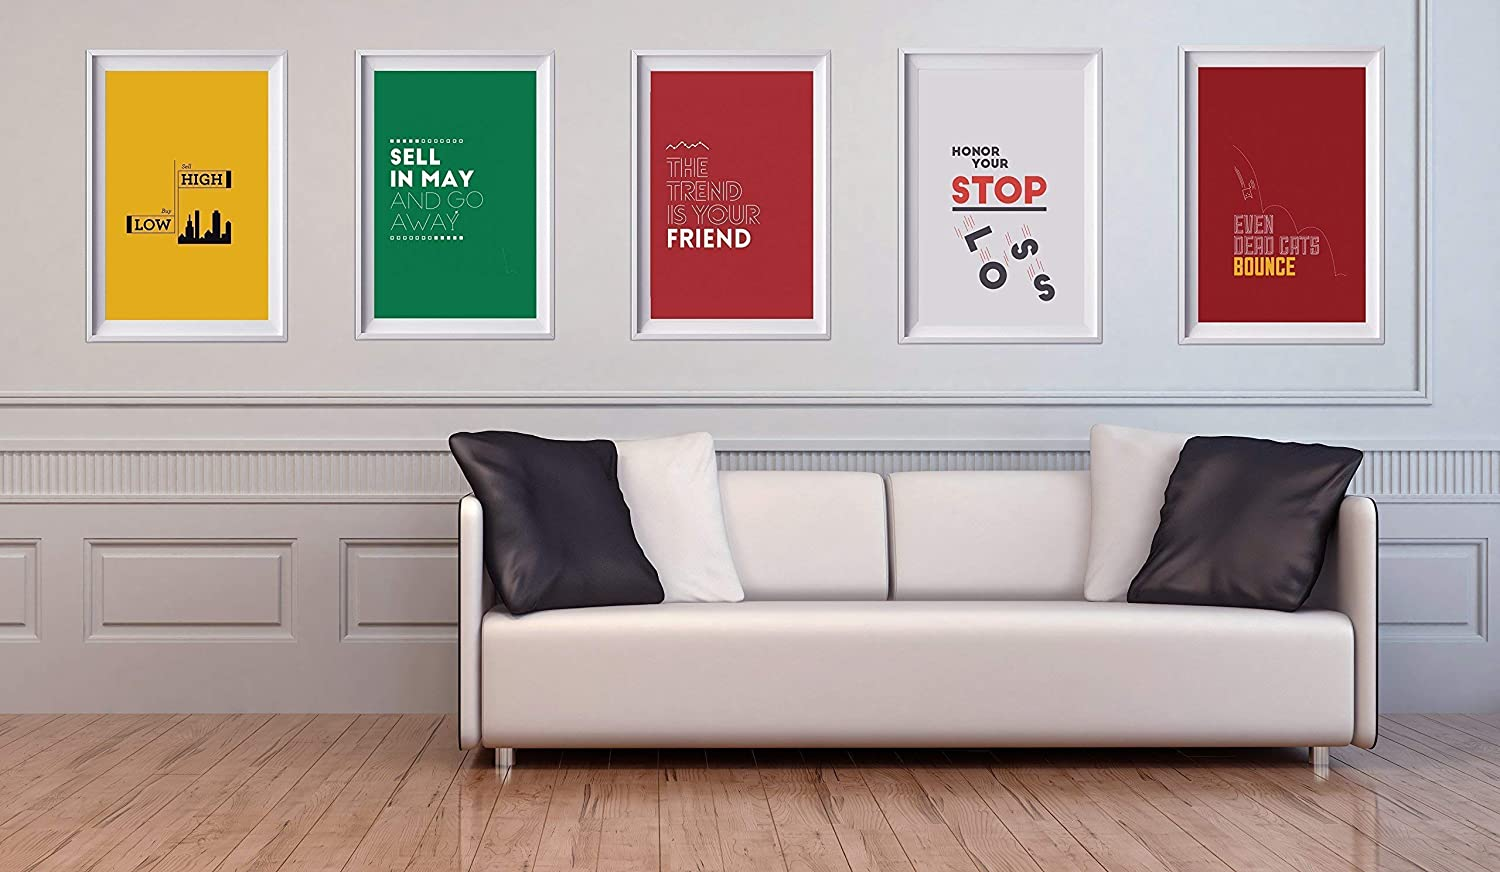 STOCK MARKET SAYINGS POSTER PACK. 5 great designs for the 5 most well known investing sayings